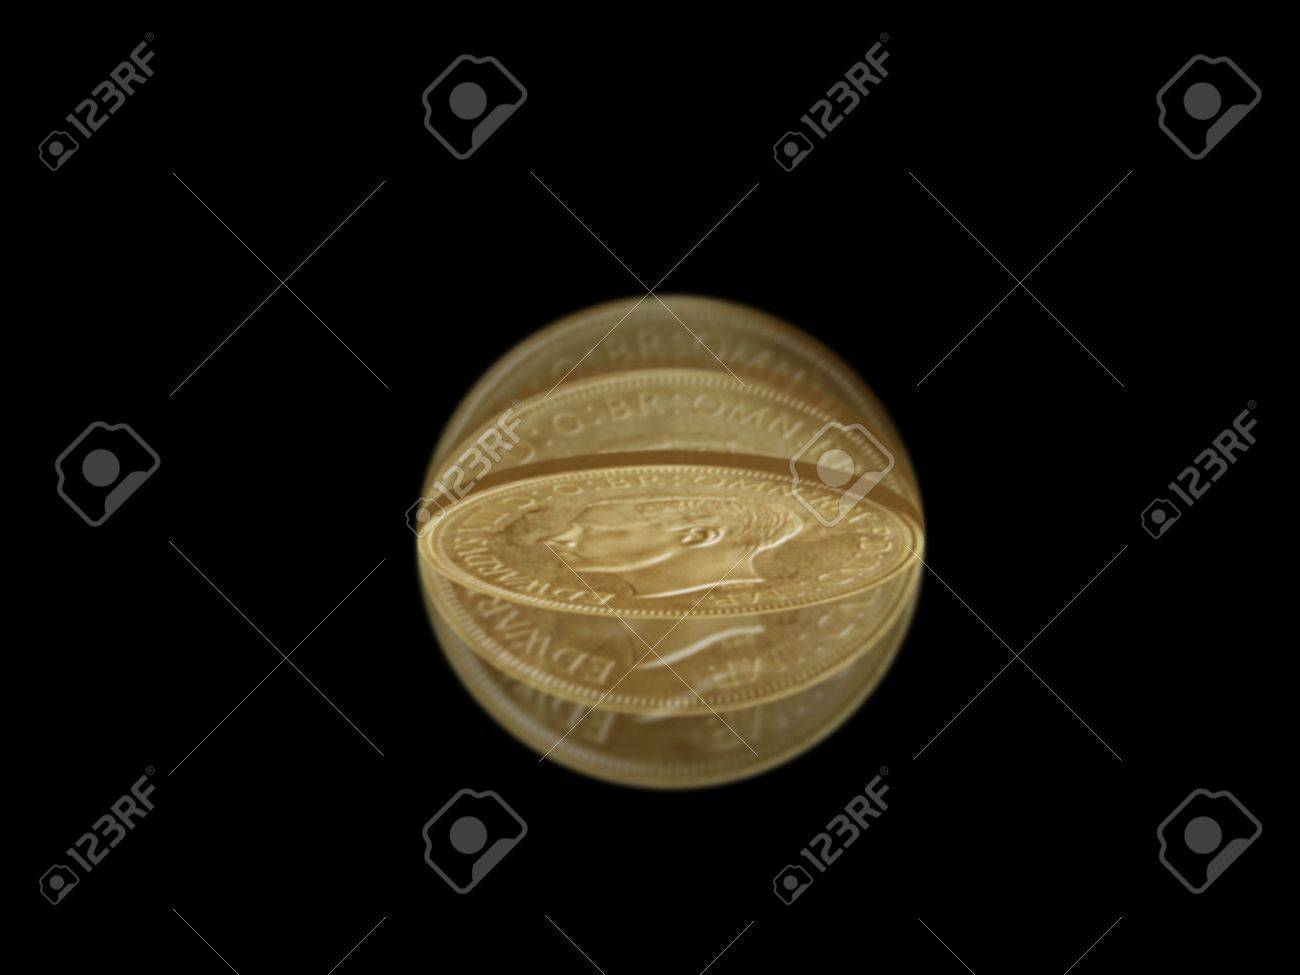 Flipped coin isolated in motion against a black background Stock Photo - 2584500